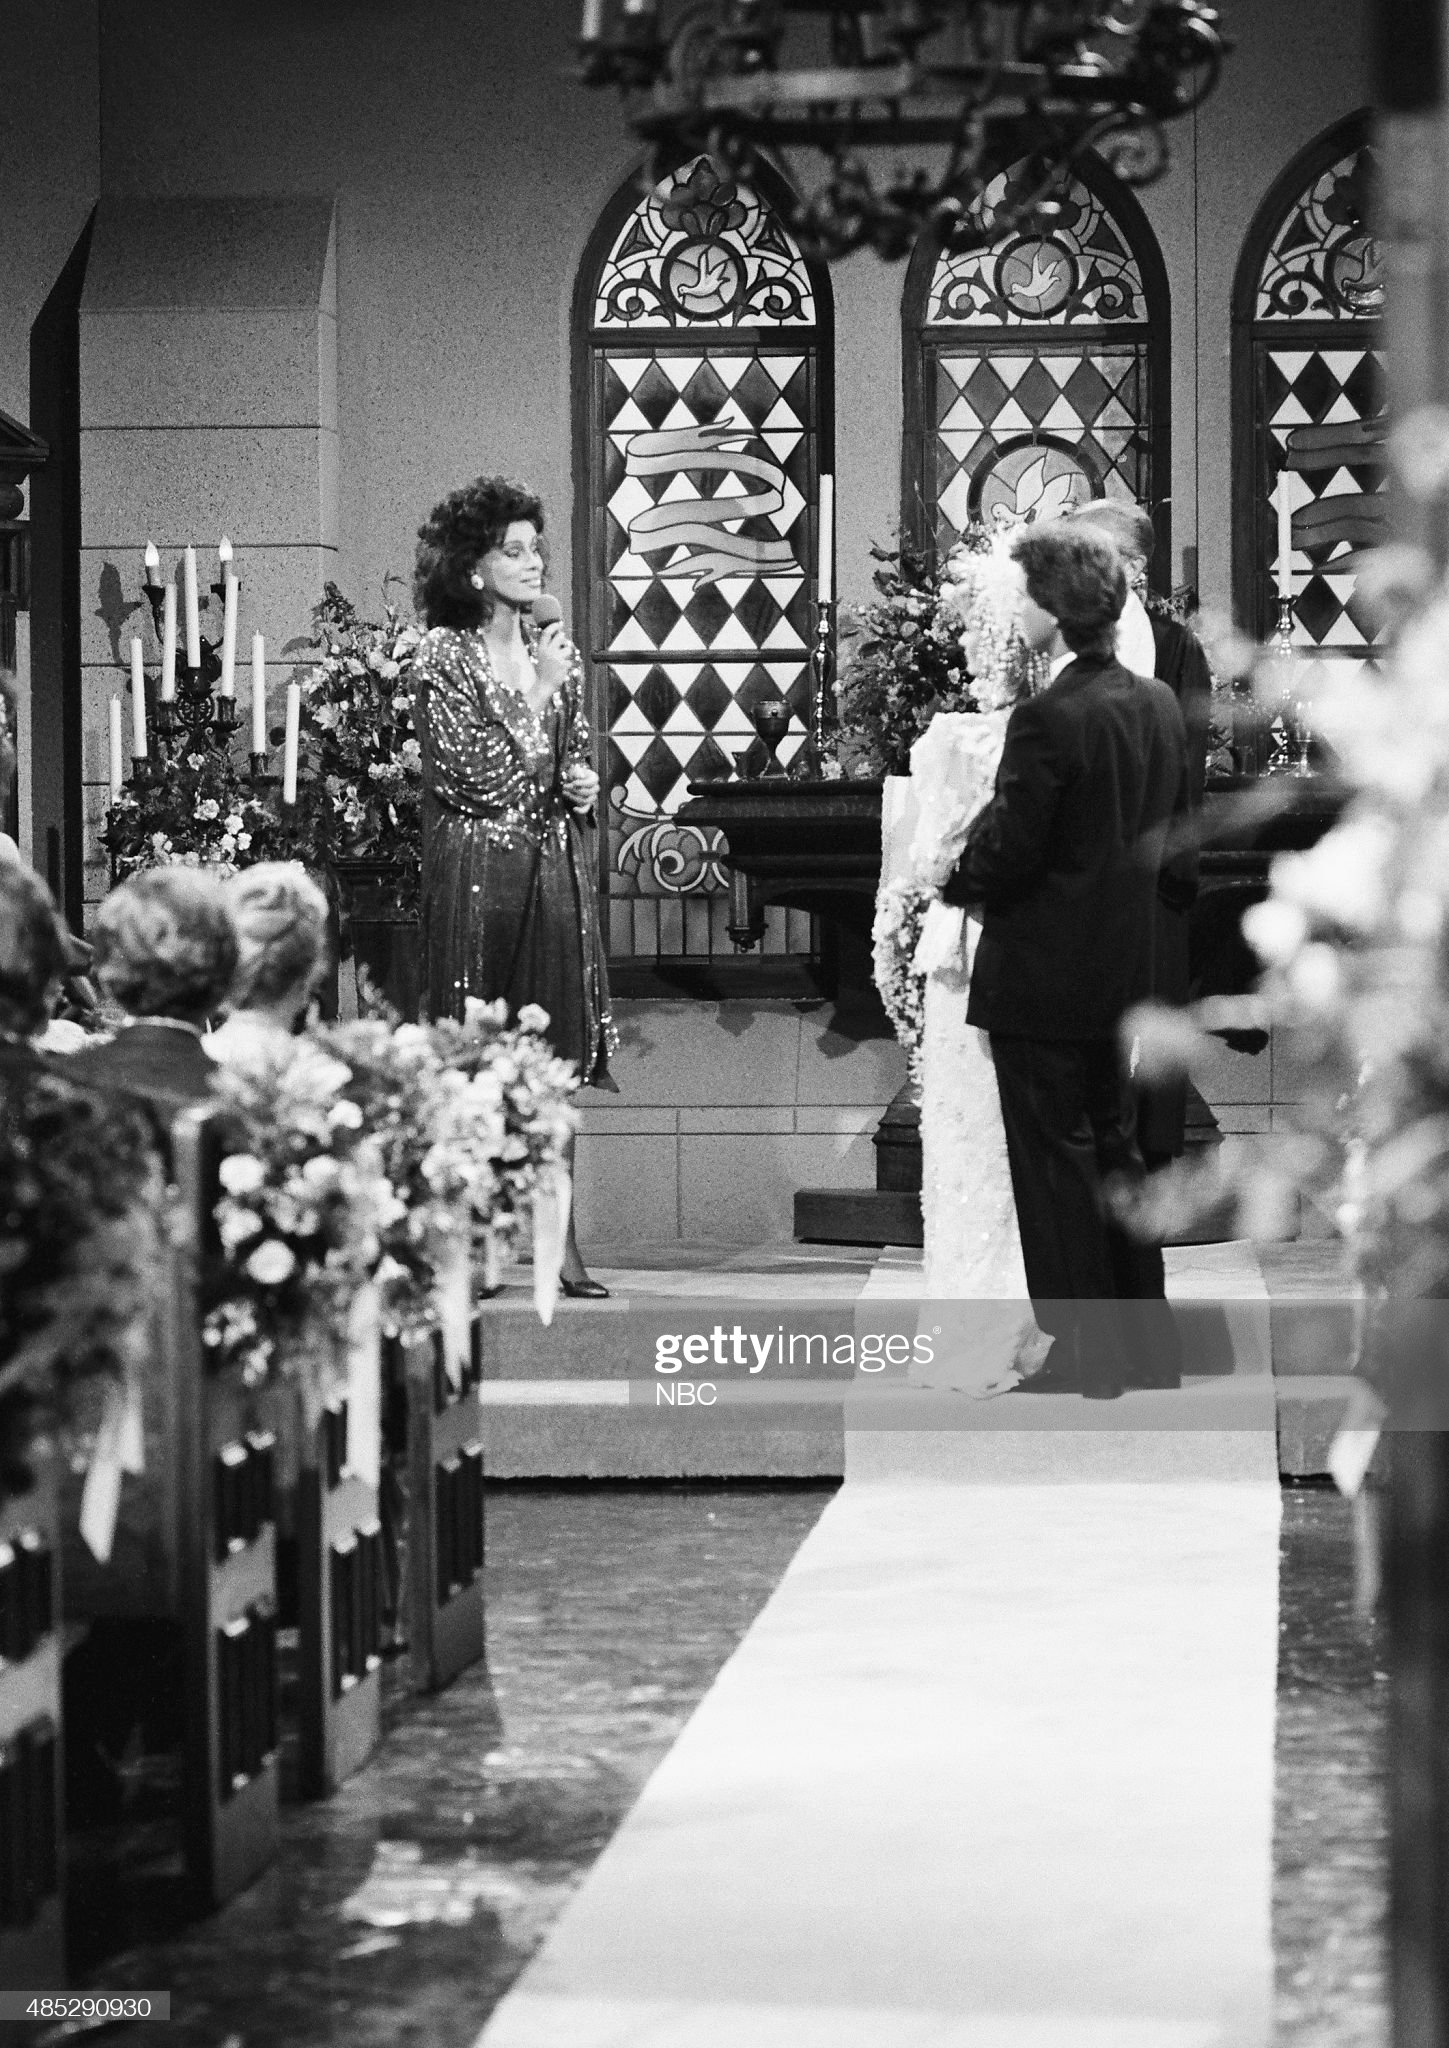 marlena-evans-roman-brady-wedding-pictured-marilyn-mccoo-as-tamara-picture-id485290930